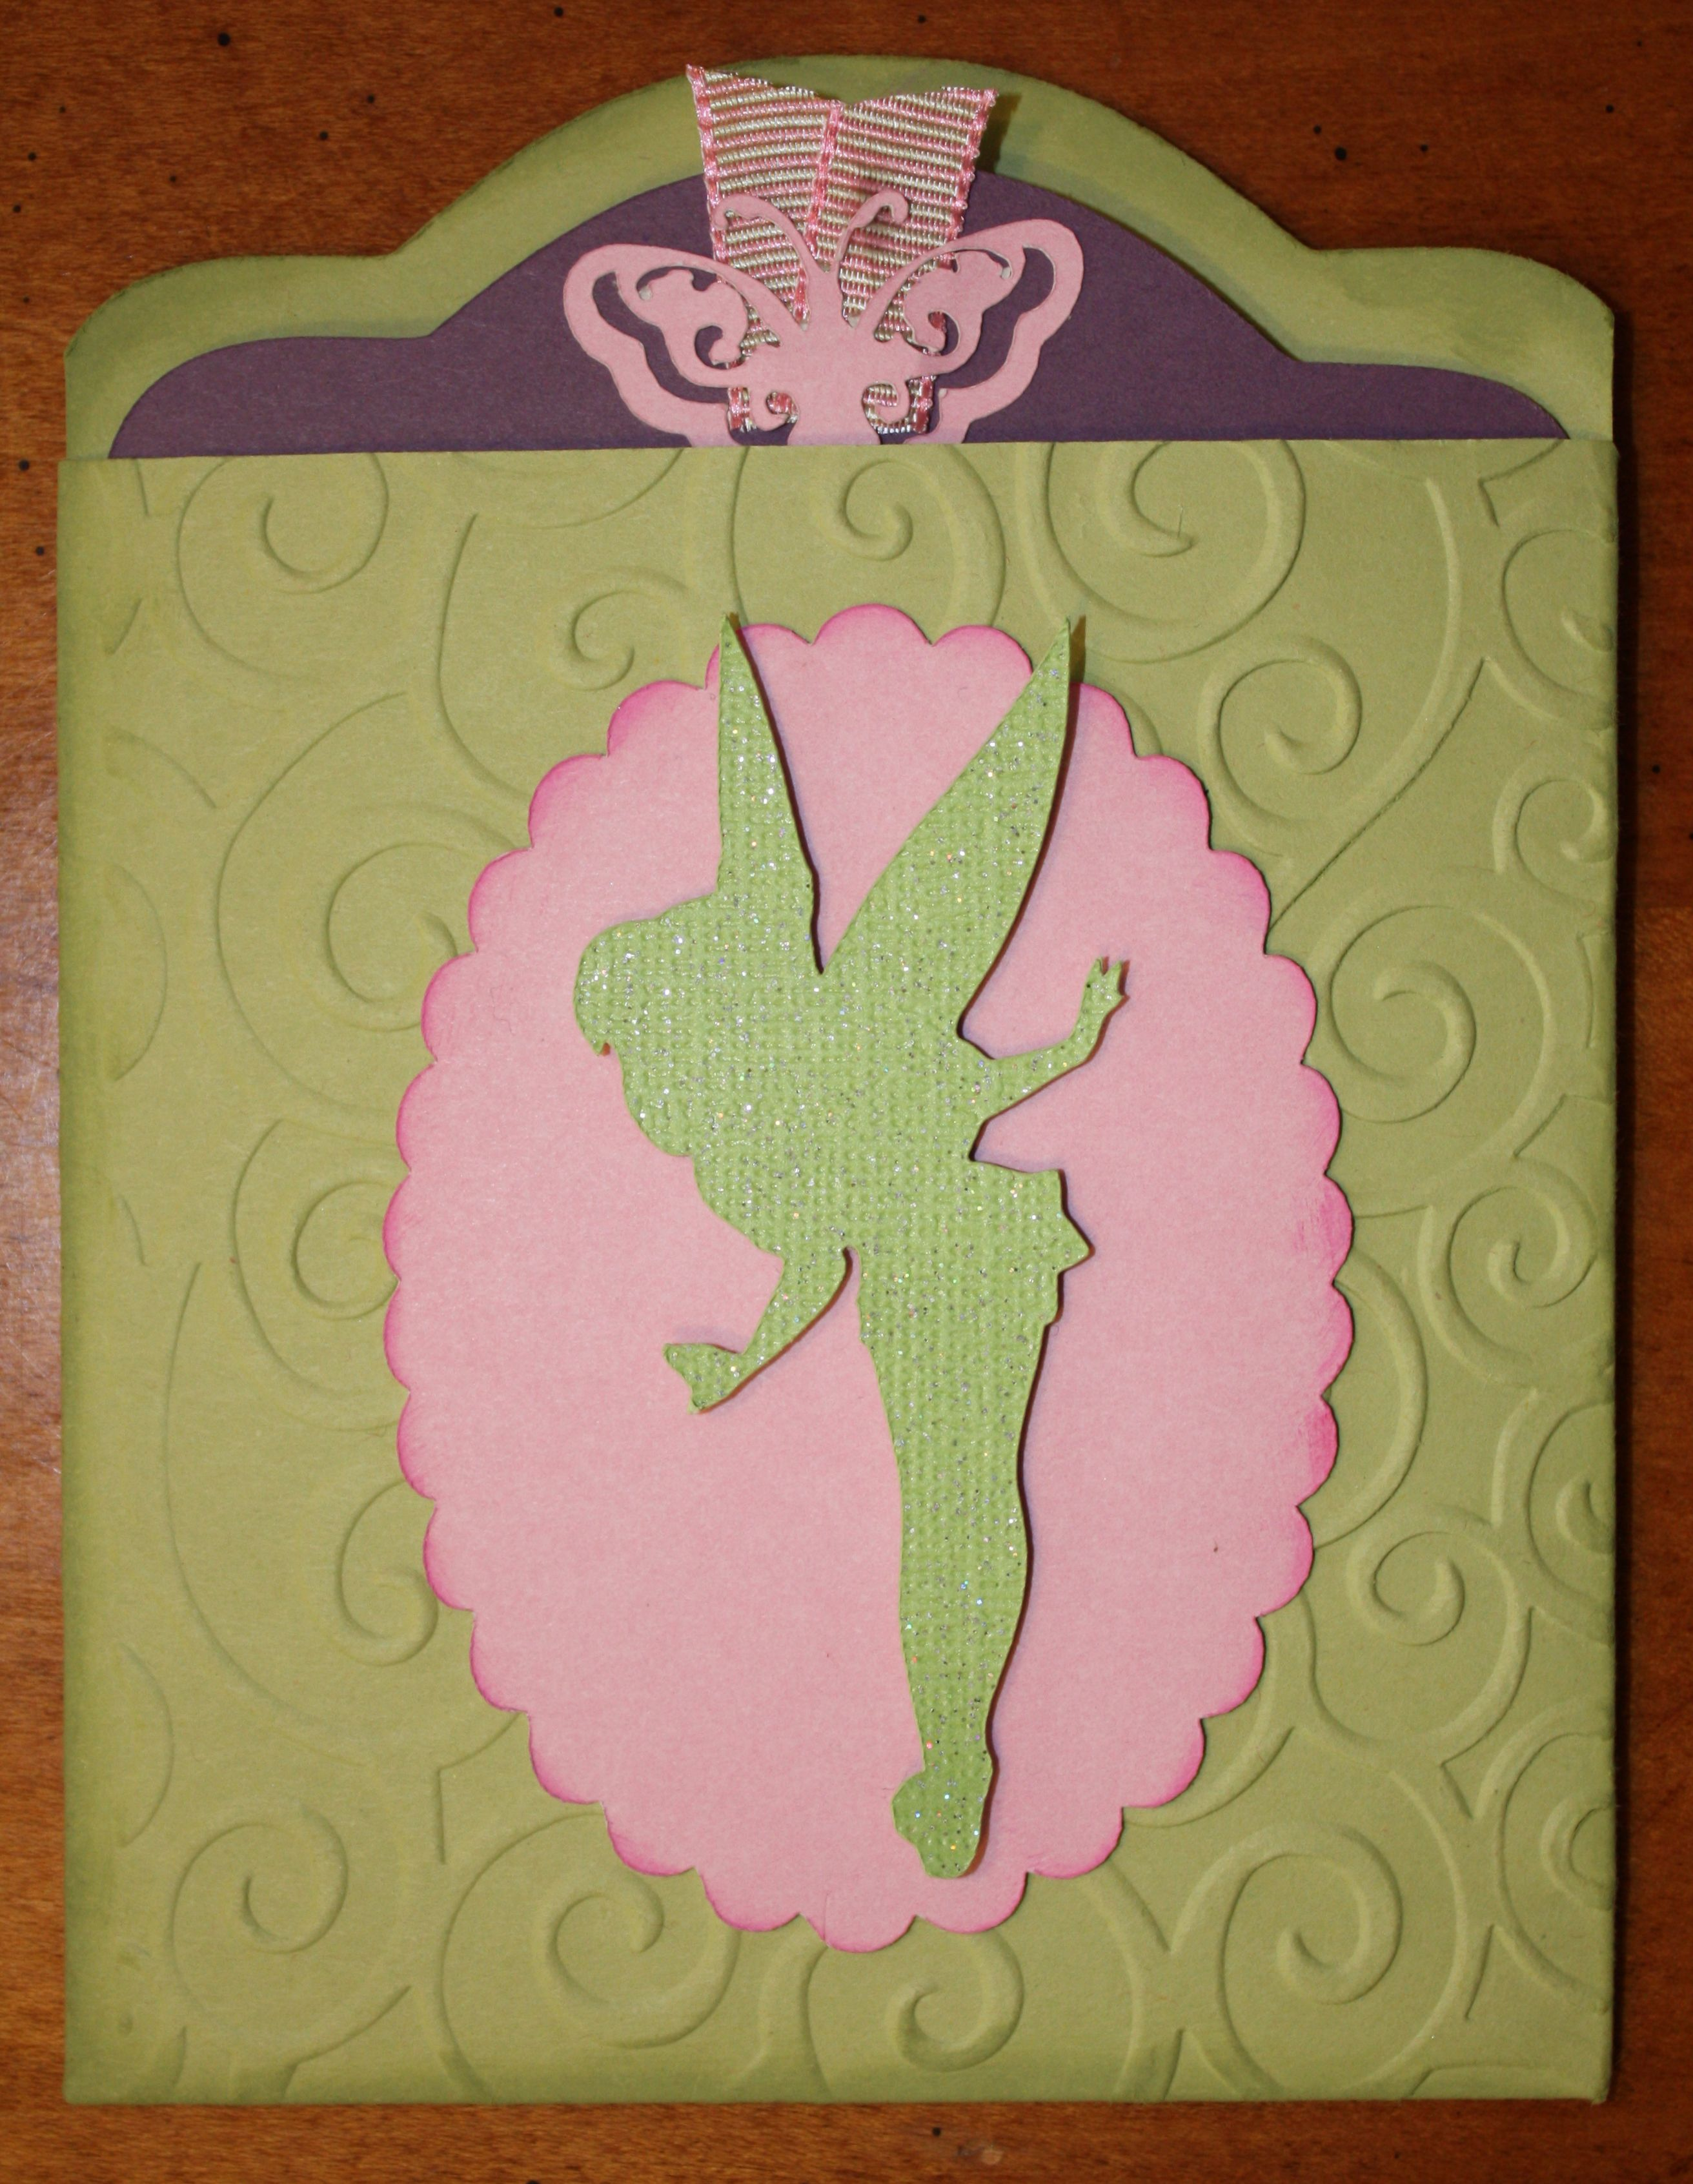 tinkerbell pocket baby shower invitation - scrapbook | shannon, Party invitations